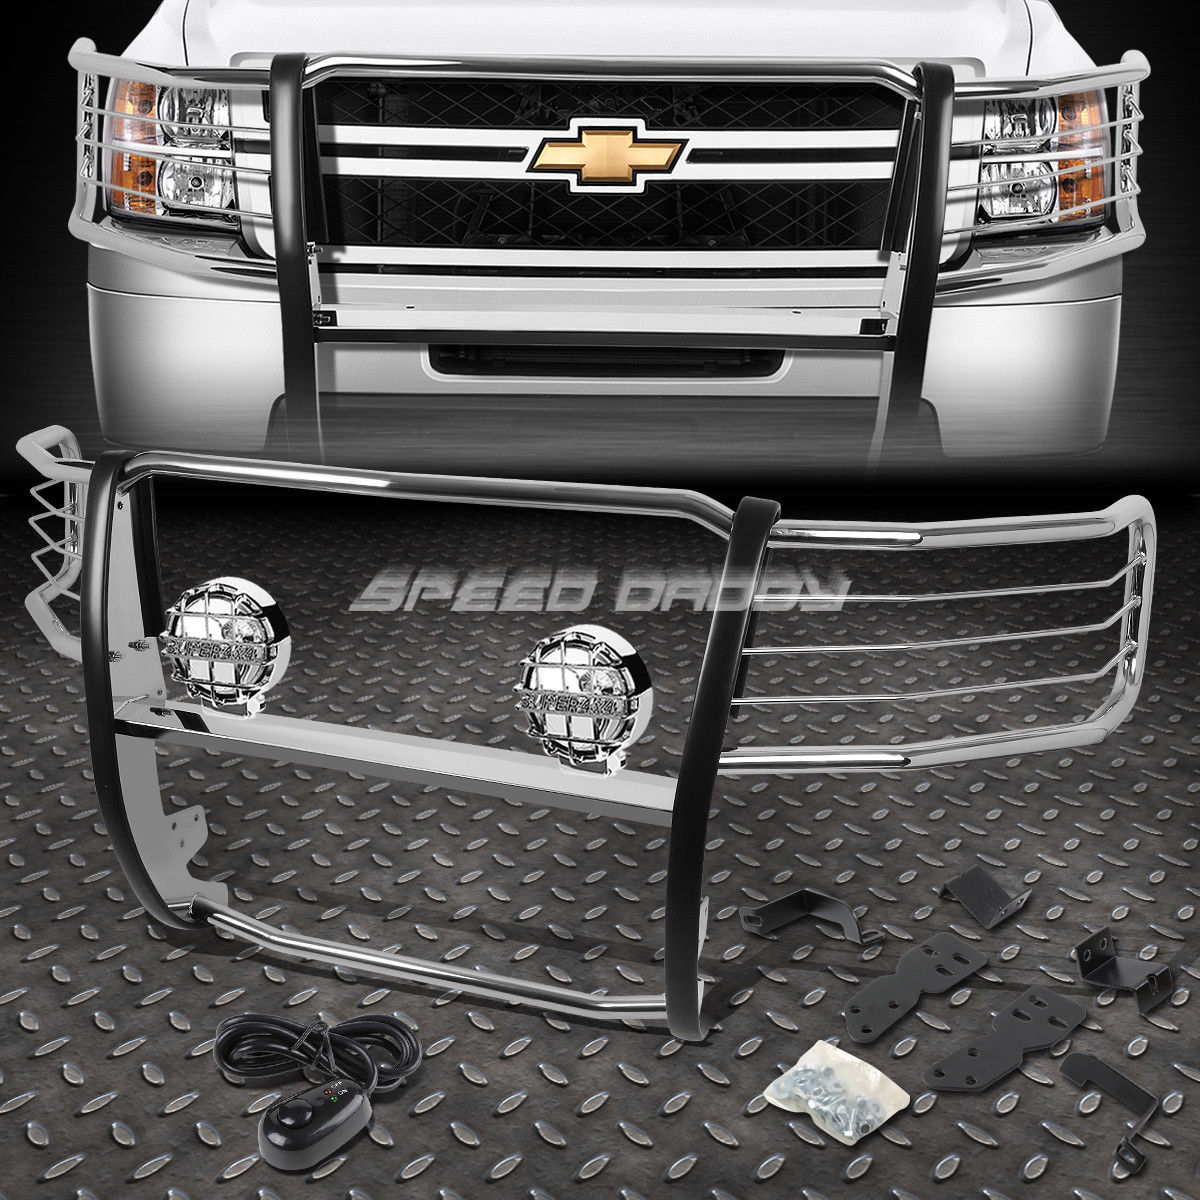 フォグライト CHROME BRUSH GRILL GUARD+ROUND CLEAR FOG LIGHT FOR 07-13 CHEVY SILVERADO 1500 CHROME BRUSH GRILL GUARD + 07-13 CHEVY SILVERADO 1500の丸クリアライト